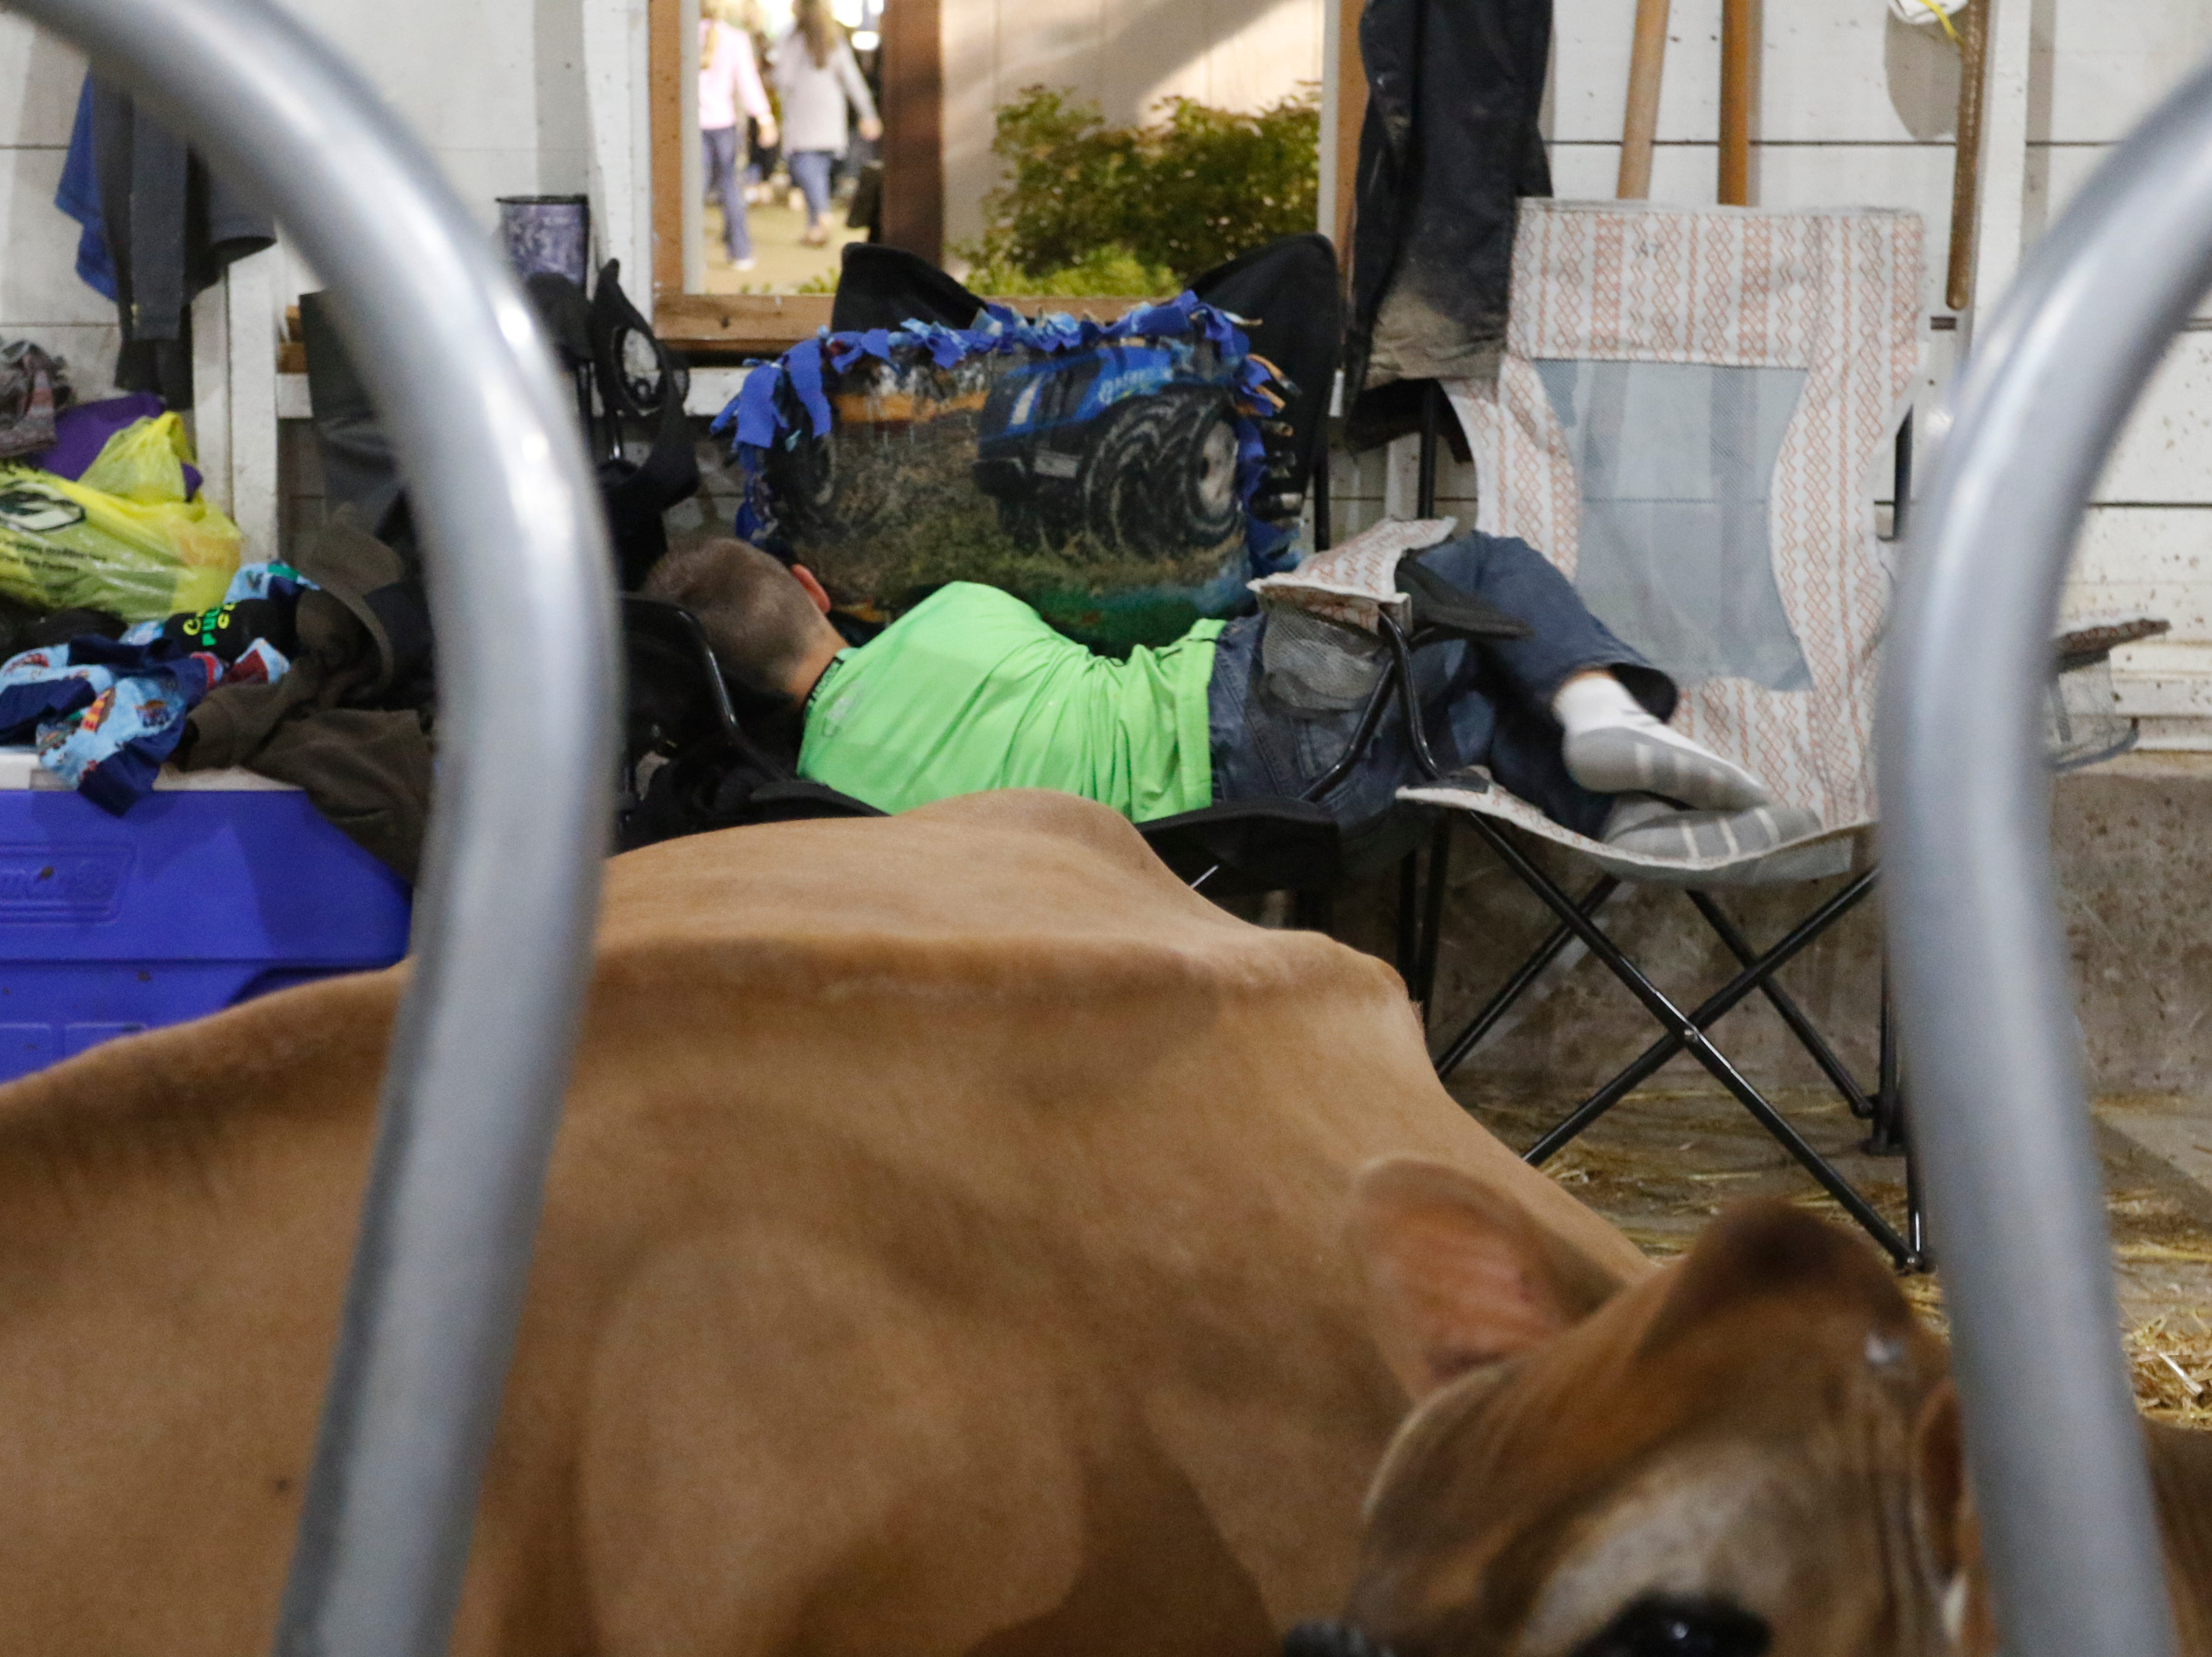 Carter Trowbridge, 10, tries to take a nap between two folding chairs in the world's largeste round barn during the Central Wisconsin State Fair in Marshfield Wednesday, August 22, 2018.